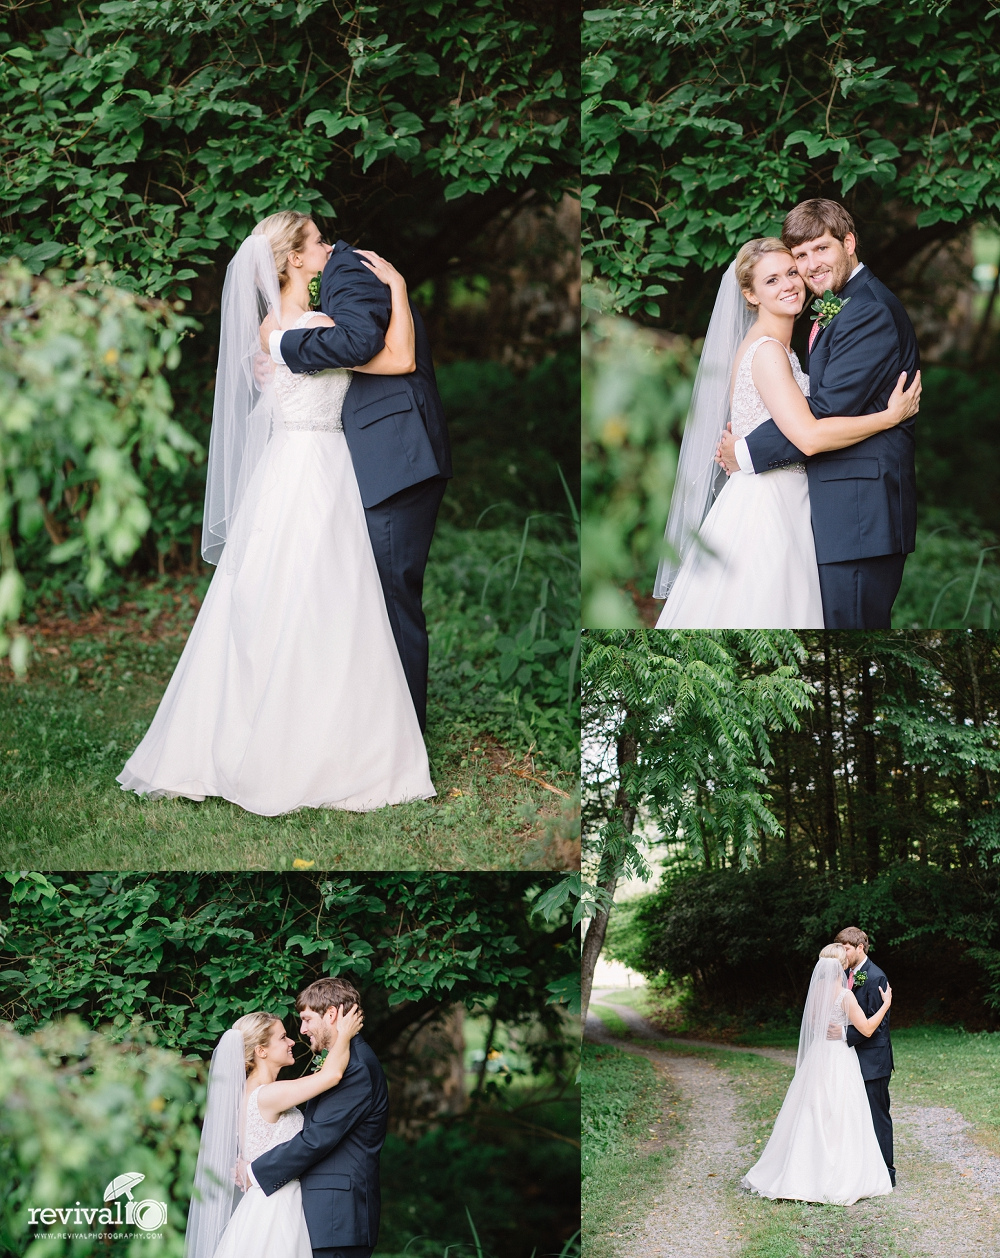 Allison + Wilson An Intimate Bed and Breakfast Ceremony in Valle Crucis NC  www.revivalphotography.com